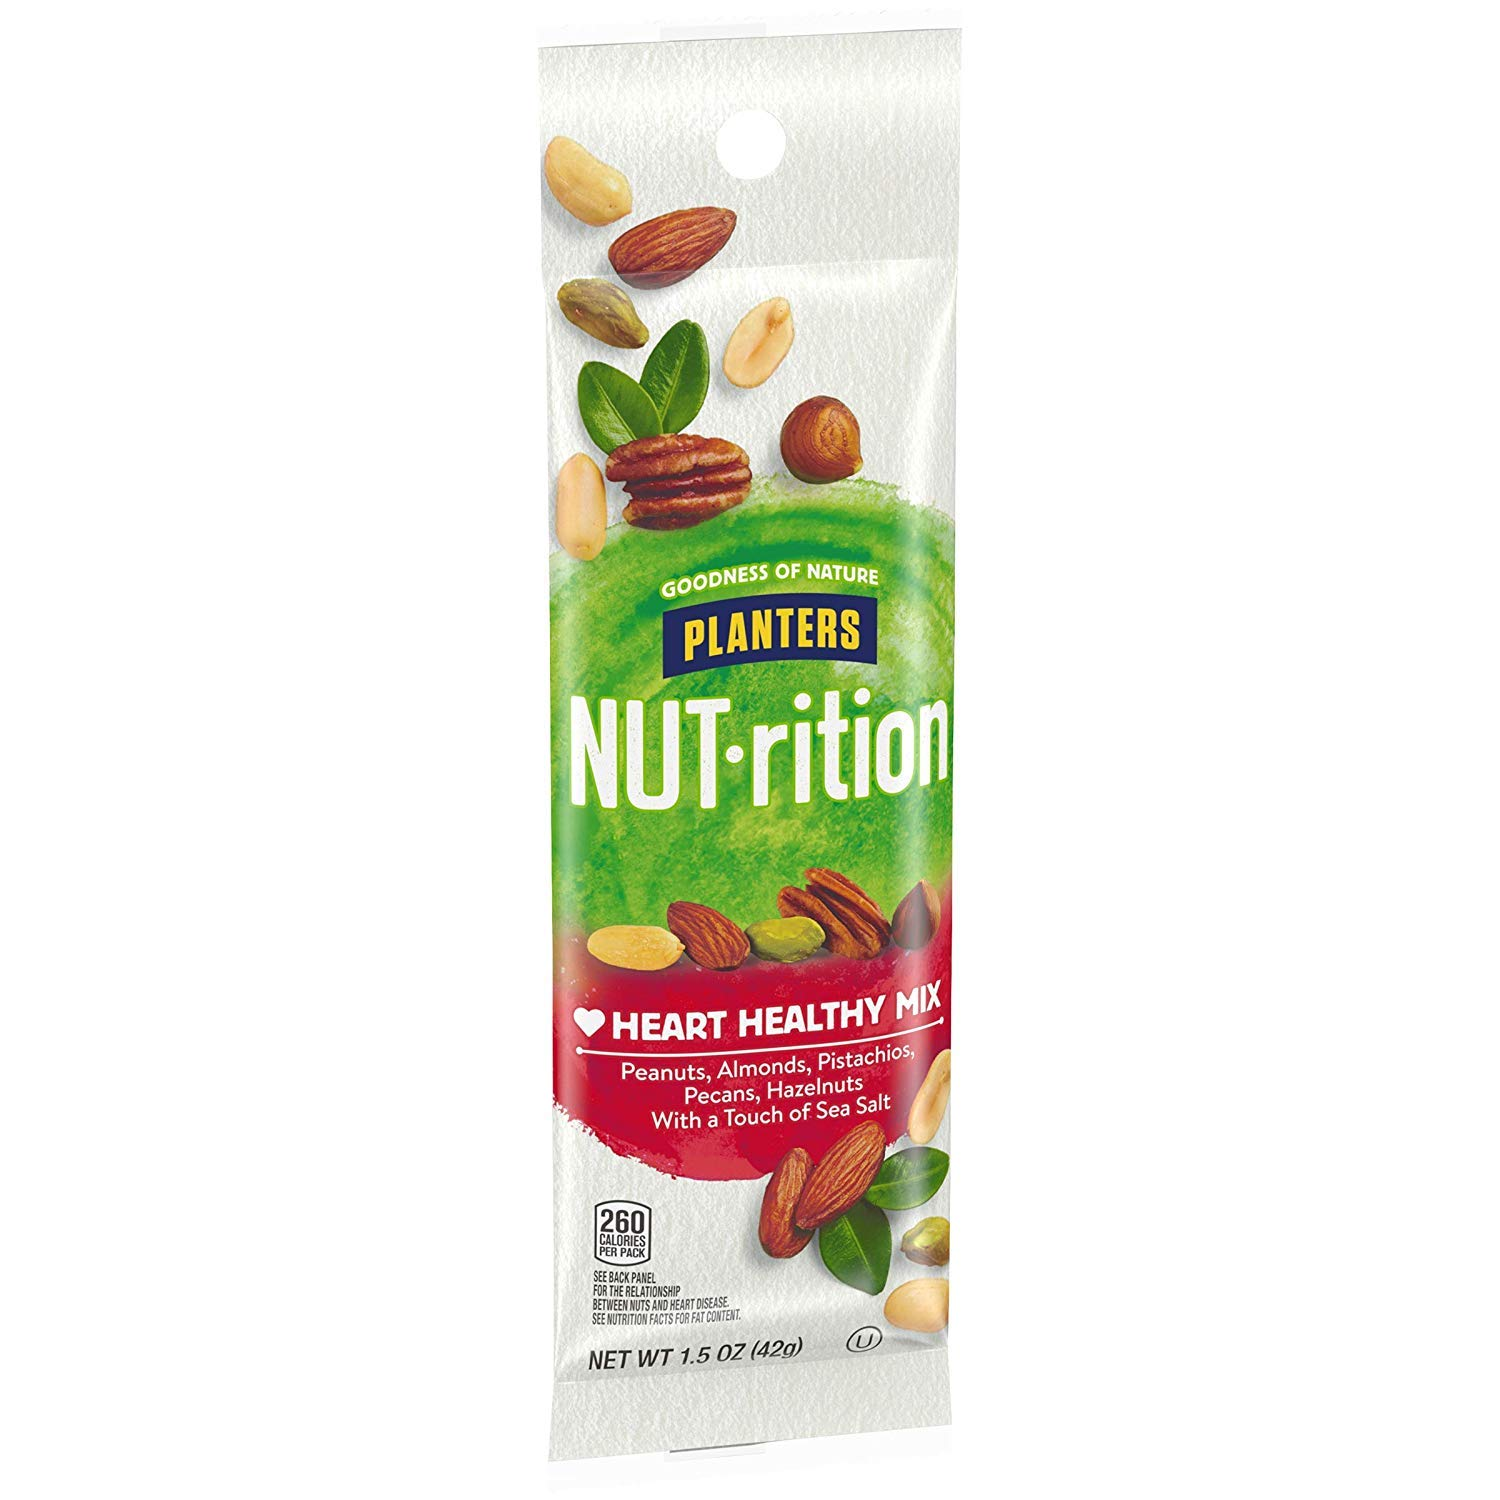 NUTrition Heart Healthy Nut Mix (1.5 oz Bags, Pack of 18) by Planters (Image #7)